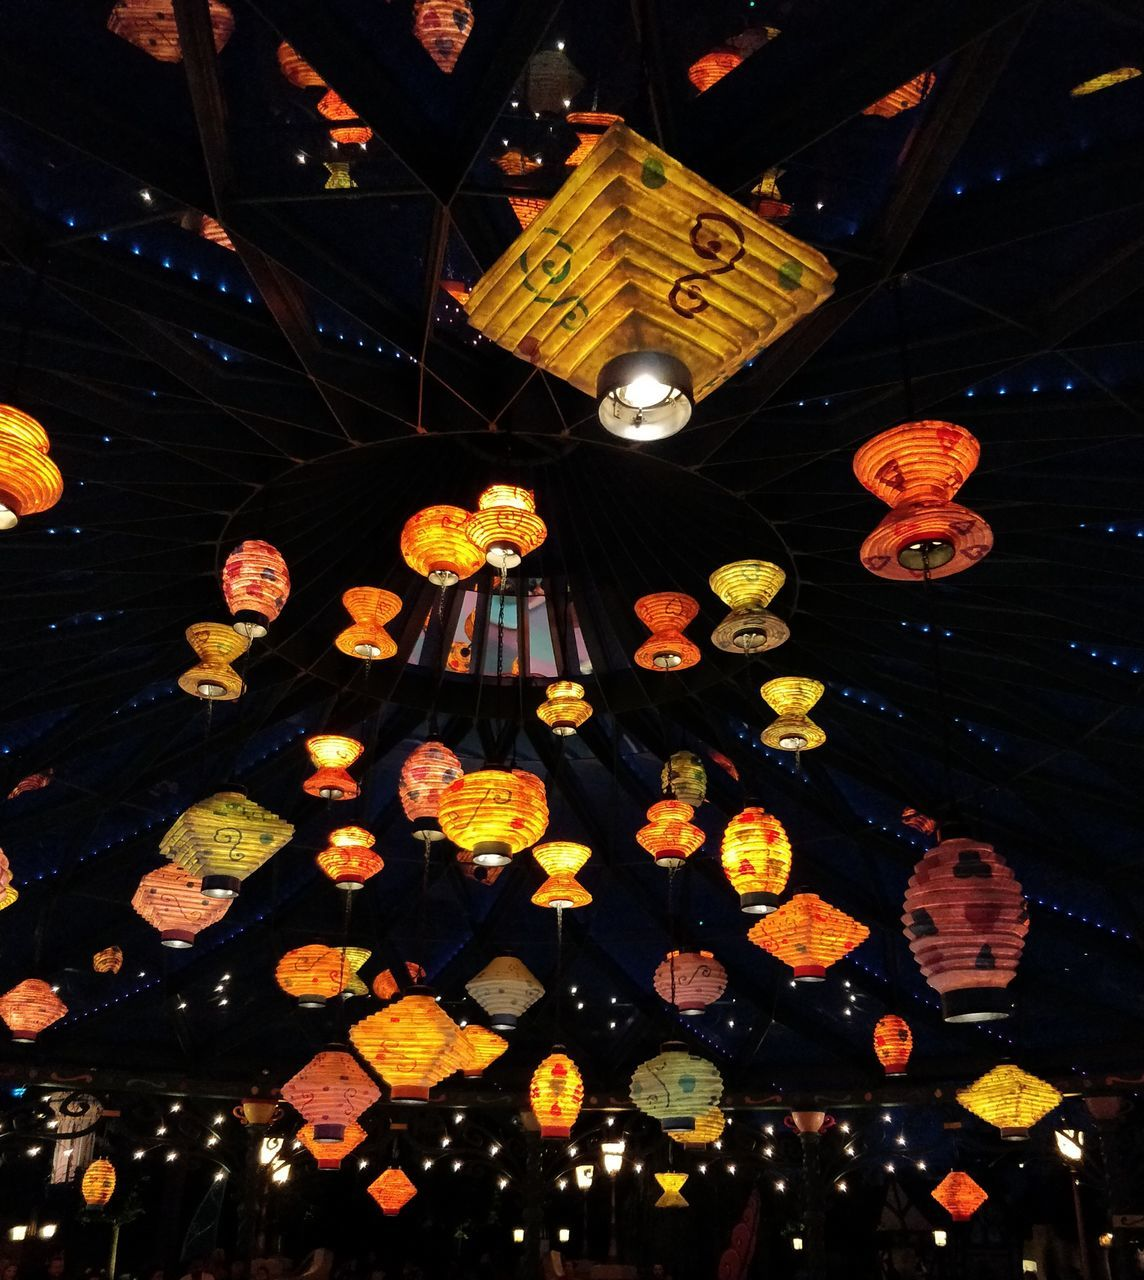 illuminated, night, lighting equipment, celebration, hanging, decoration, lantern, no people, glowing, low angle view, flower, indoors, chinese lantern, orange color, built structure, architecture, dark, ceiling